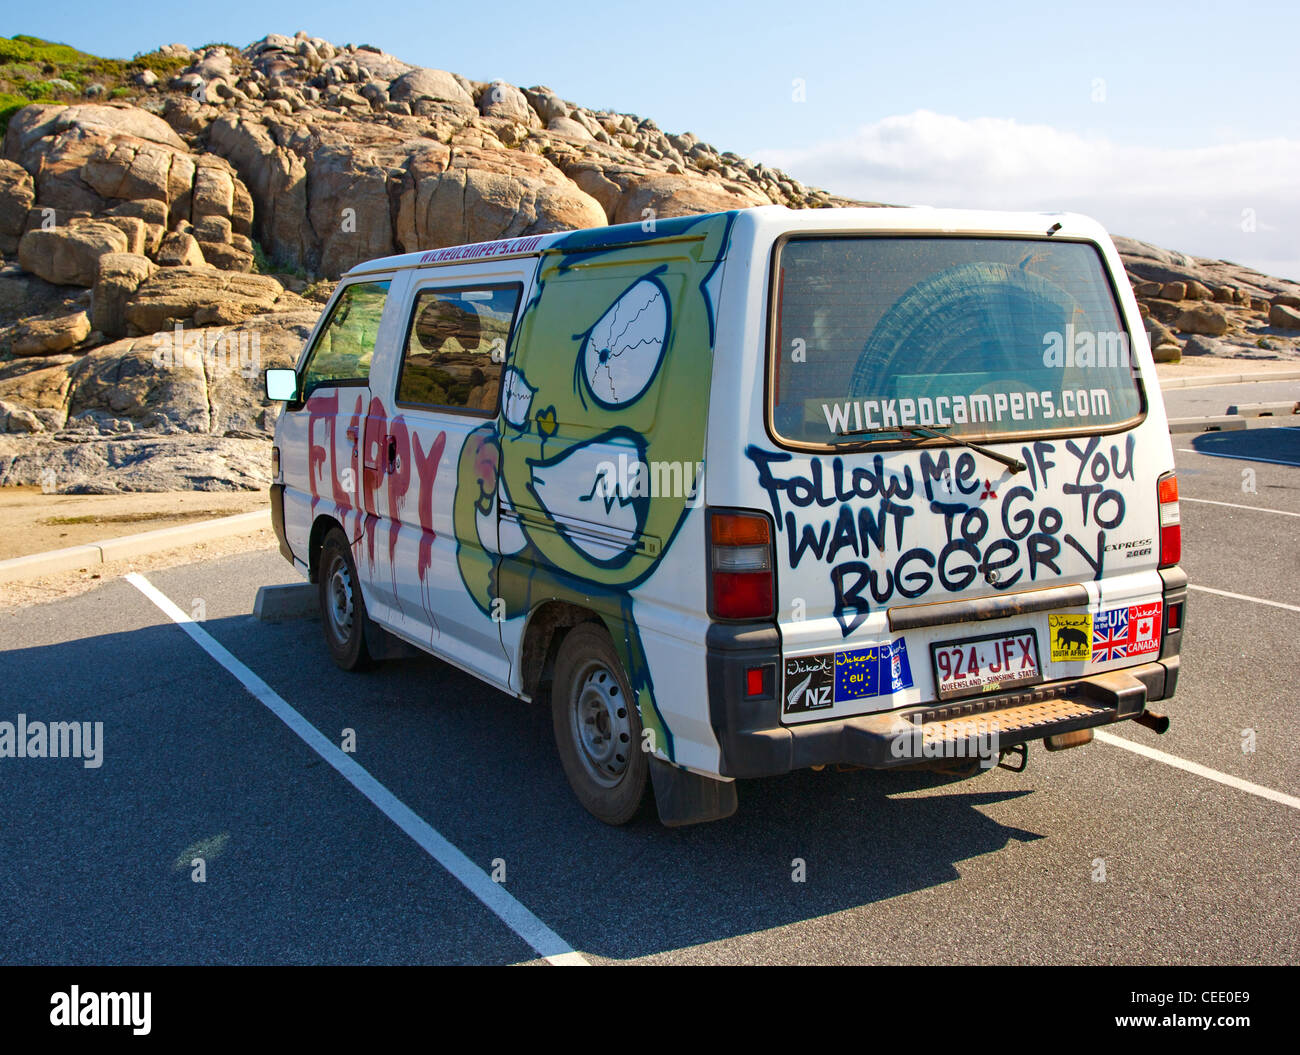 Flippy the Wicked Campers camper van in a western Australia car park ...